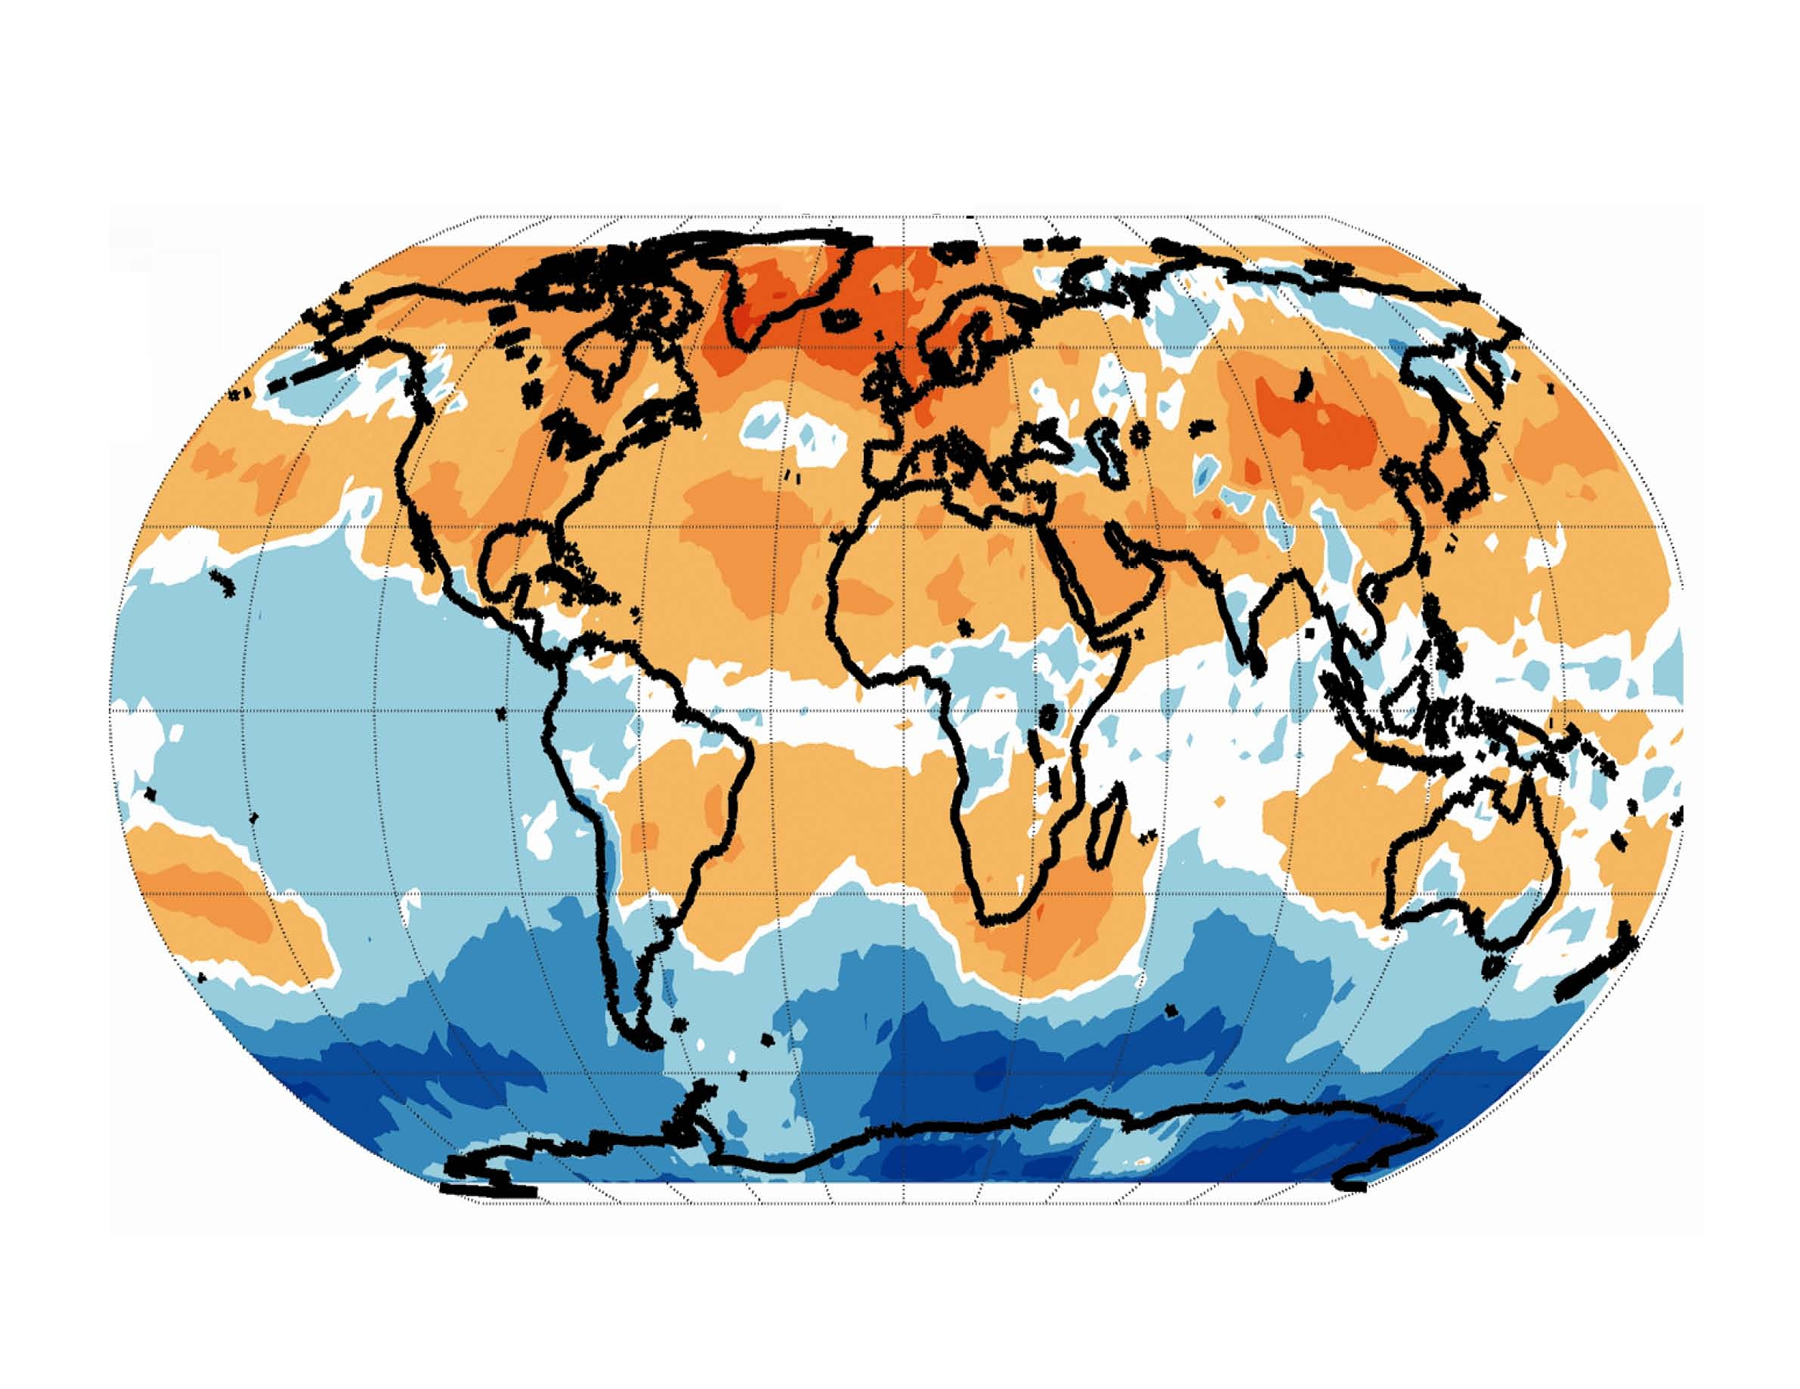 This map of the Earth shows areas of particularly strong warming of the lower atmosphere in yellow, orange and reddish colors. Note the enhanced warming of midlatitude regions north and south of the equator, indicating the expansion of the tropics. The map also shows pronounced warming at Arctic latitudes.